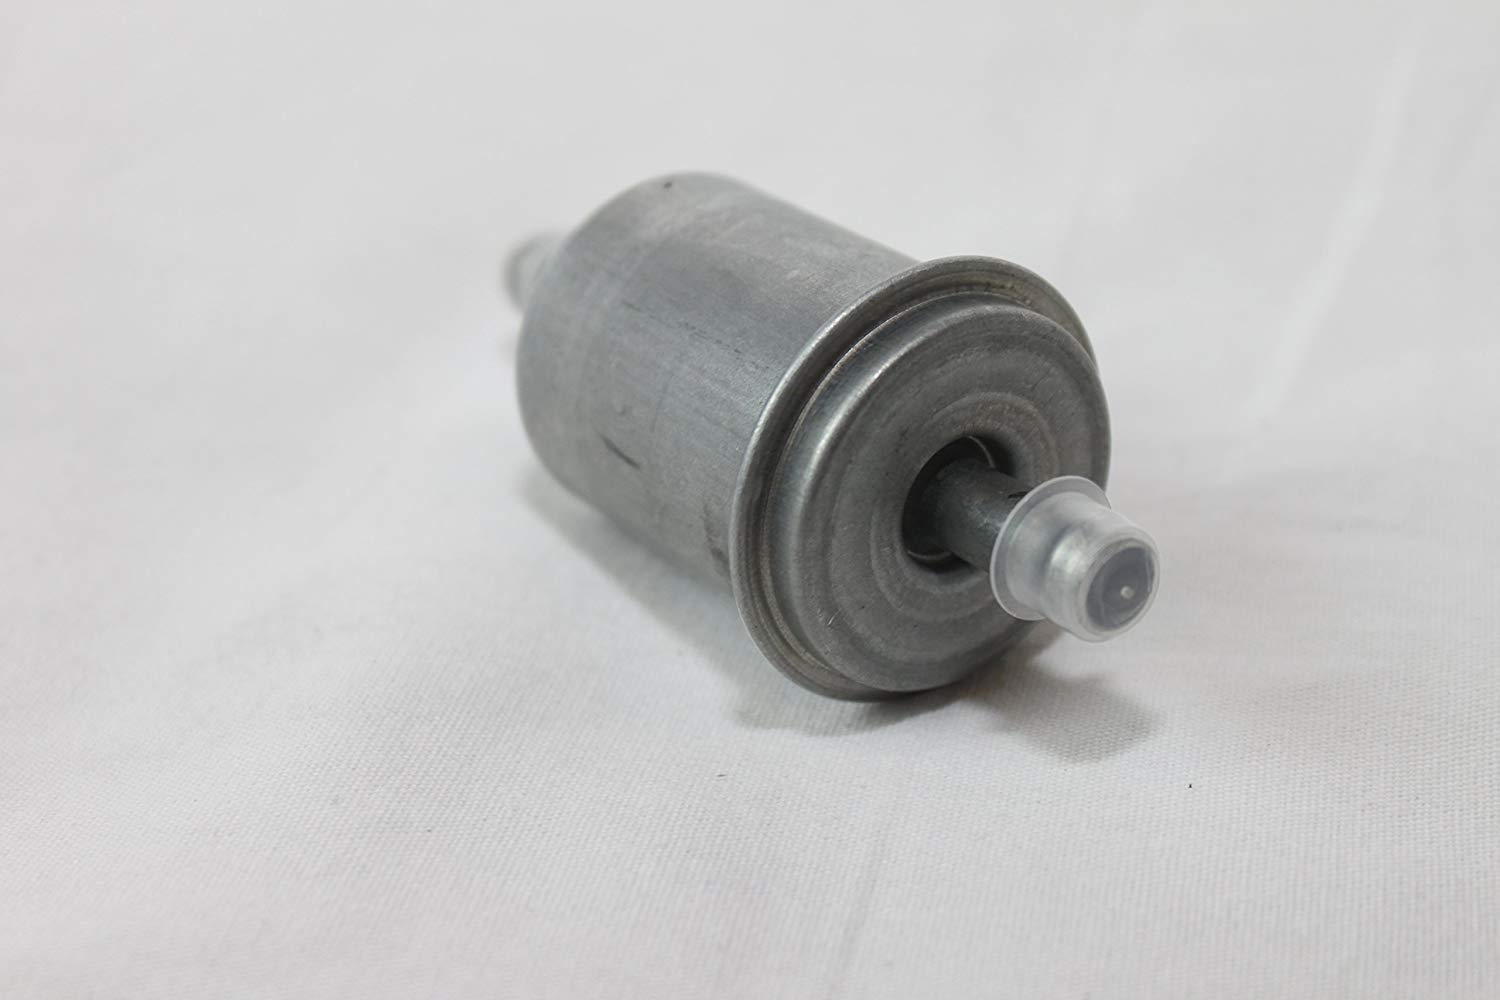 FUEL FILTER COMP., CFMoto OEM - 6090-120220 - CFMoto USA Parts - Operated  by Curren RVCFMoto USA Parts